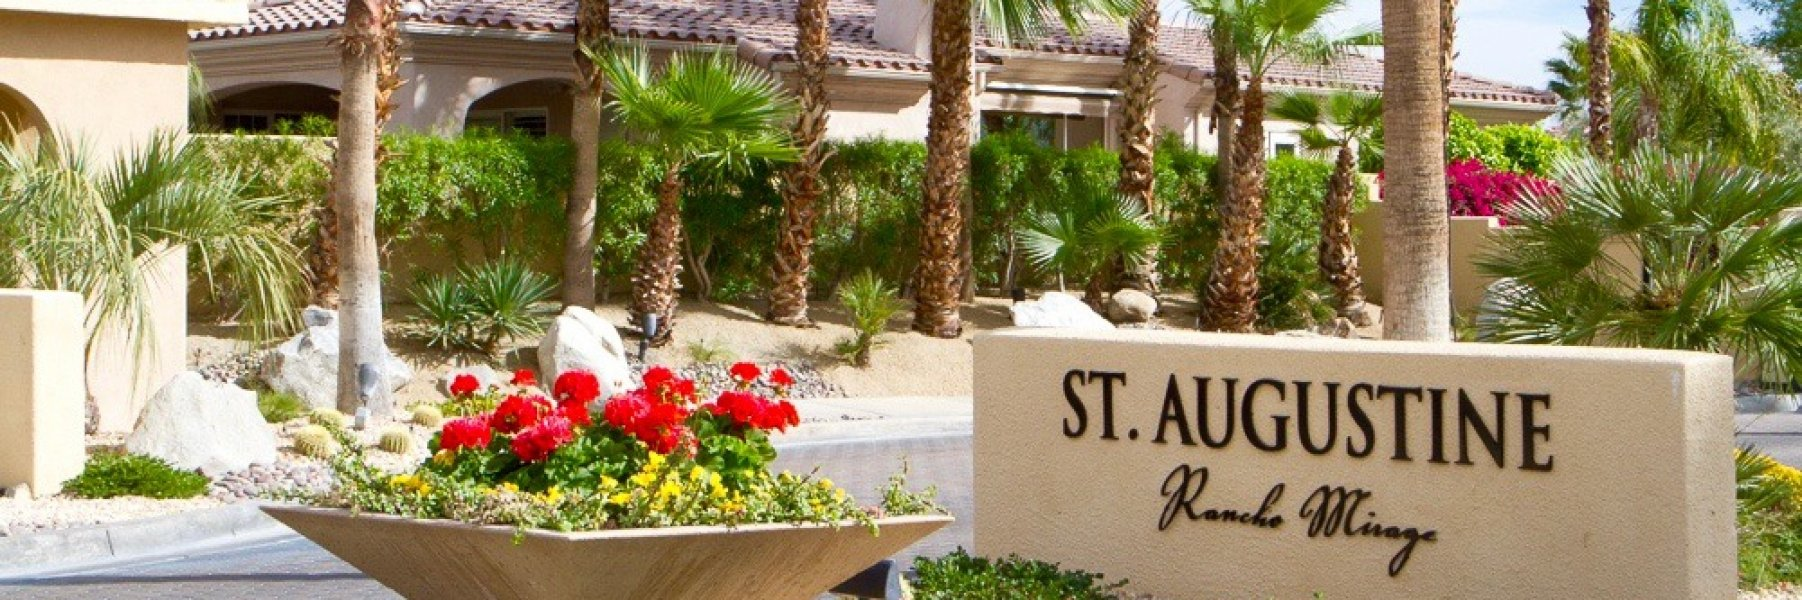 St Augustine is a community of homes in Rancho Mirage California